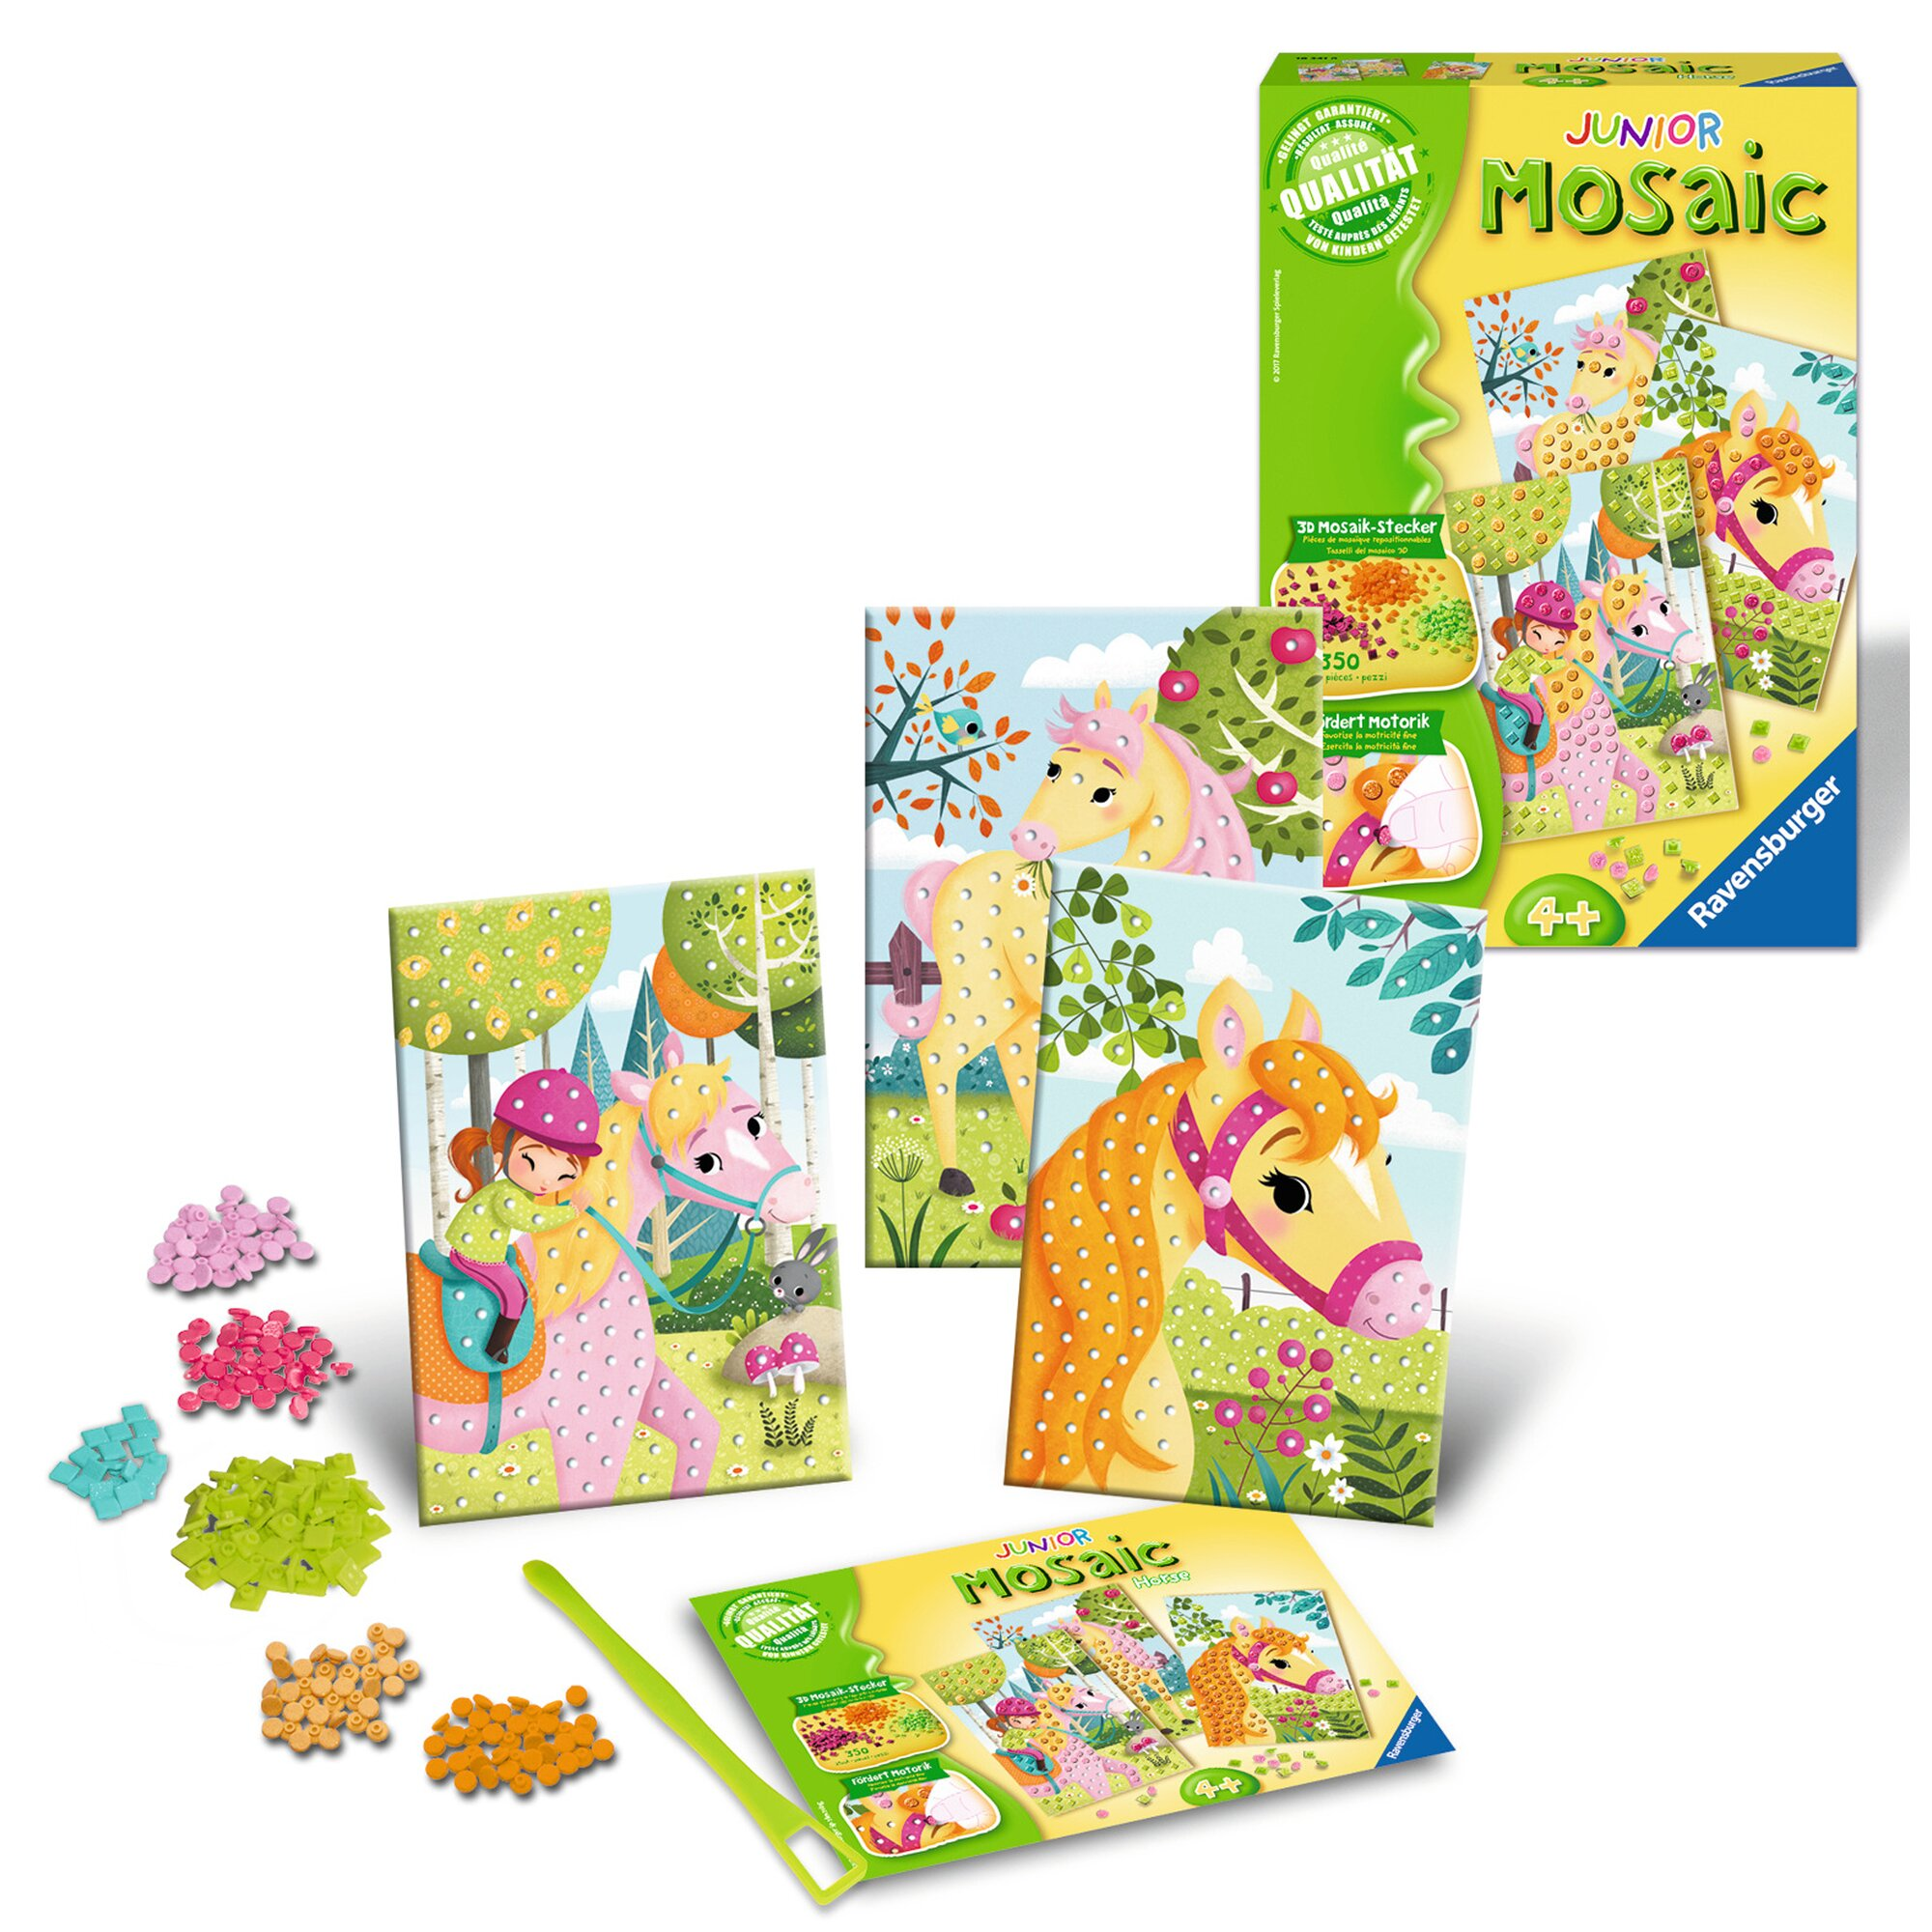 ravensburger-mosaic-junior